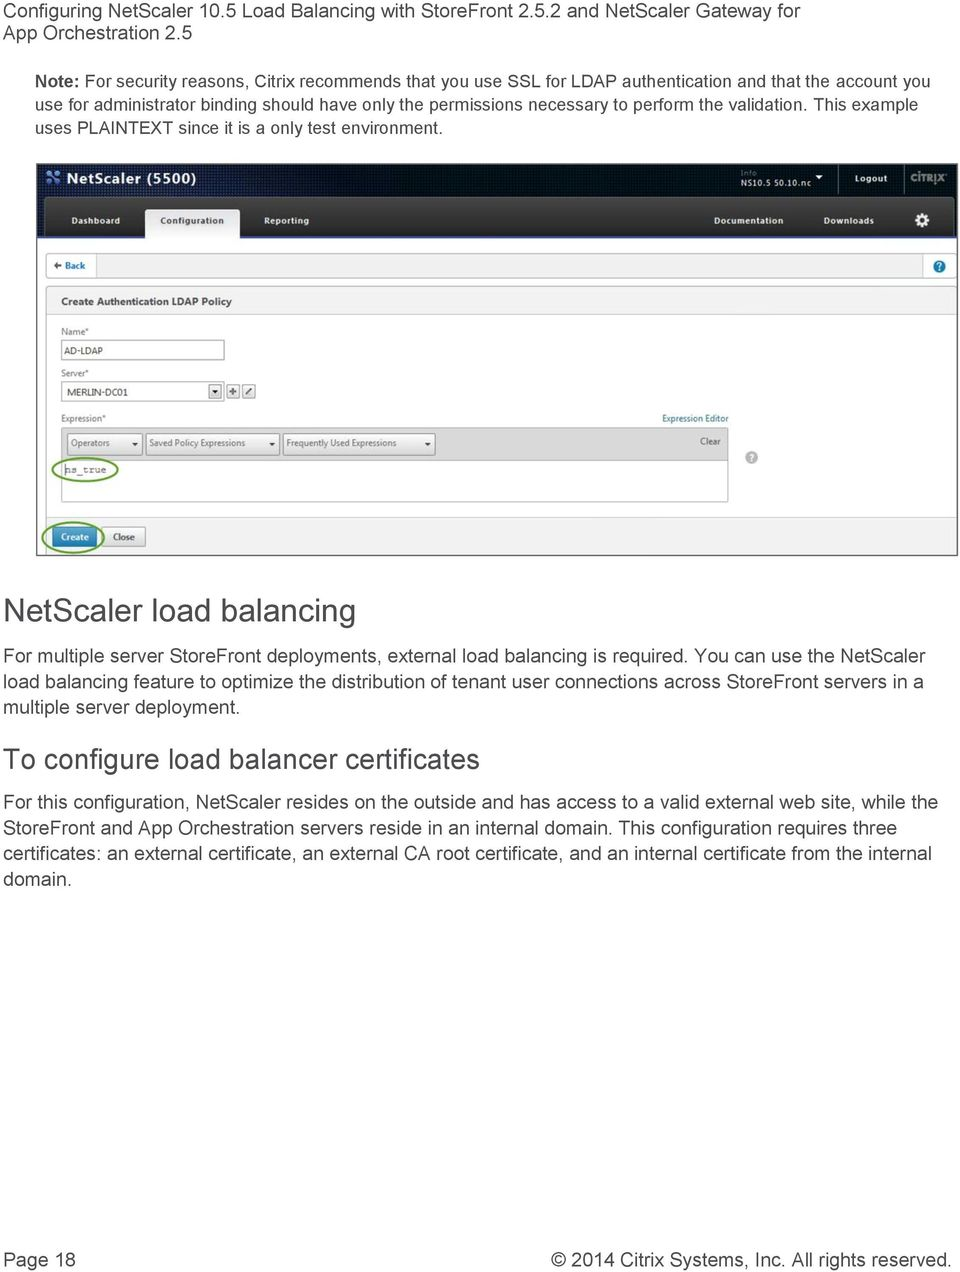 You can use the NetScaler load balancing feature to optimize the distribution of tenant user connections across StoreFront servers in a multiple server deployment.